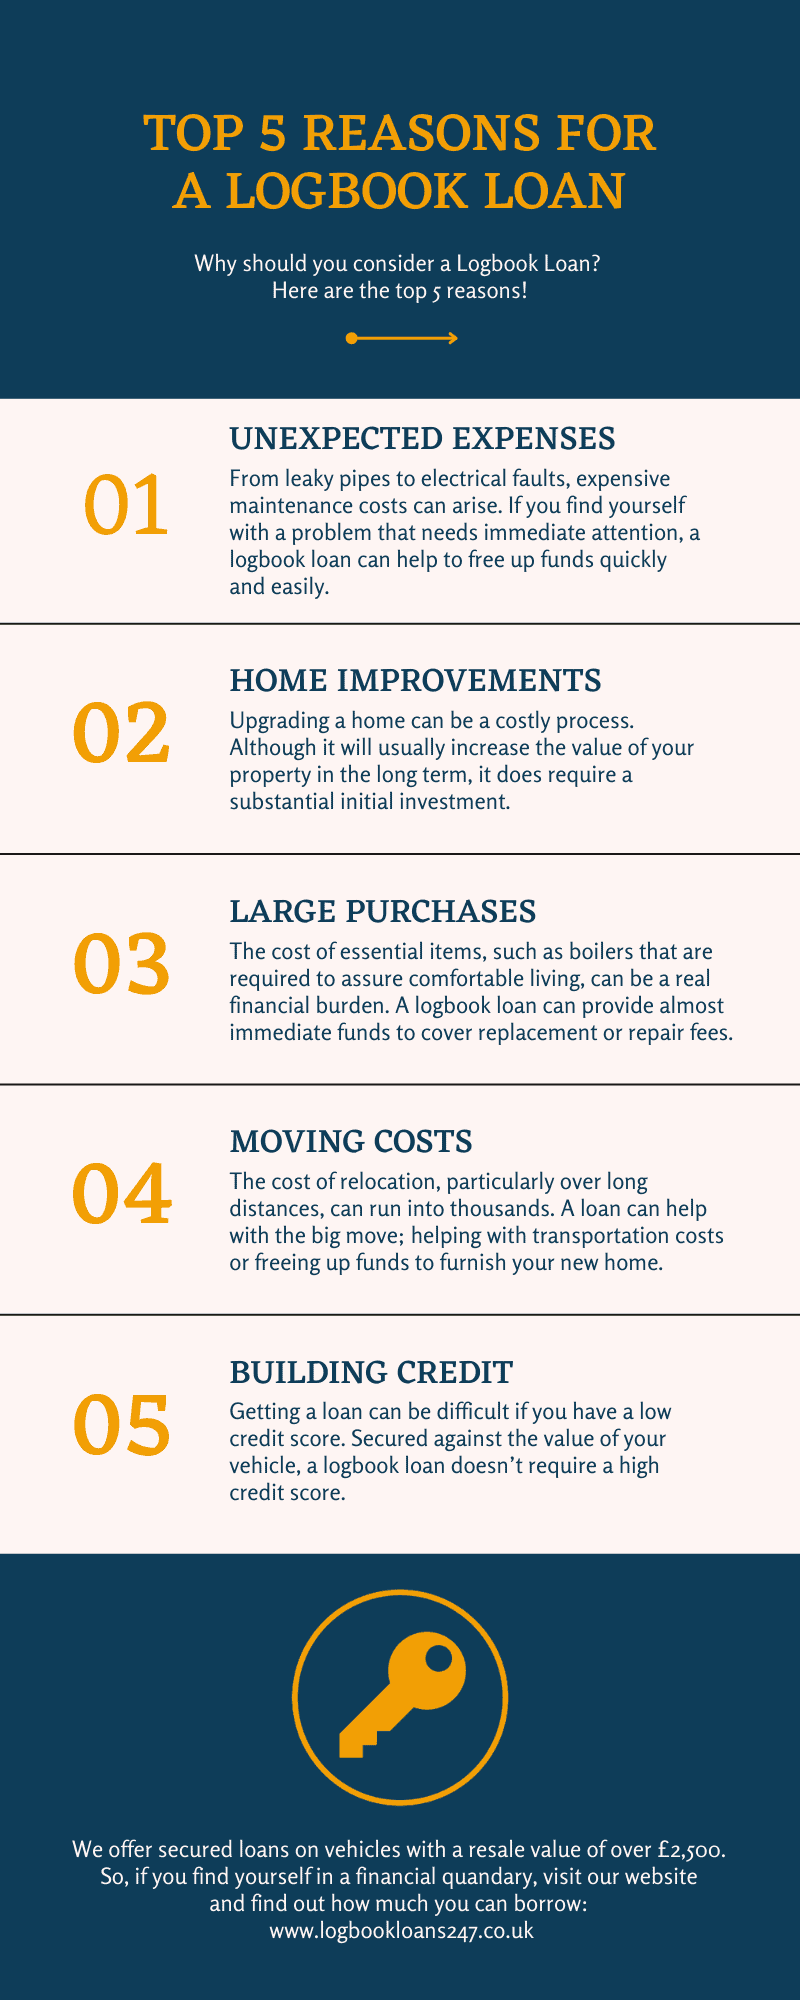 Top 5 reasons for a logbook loan pamphlet